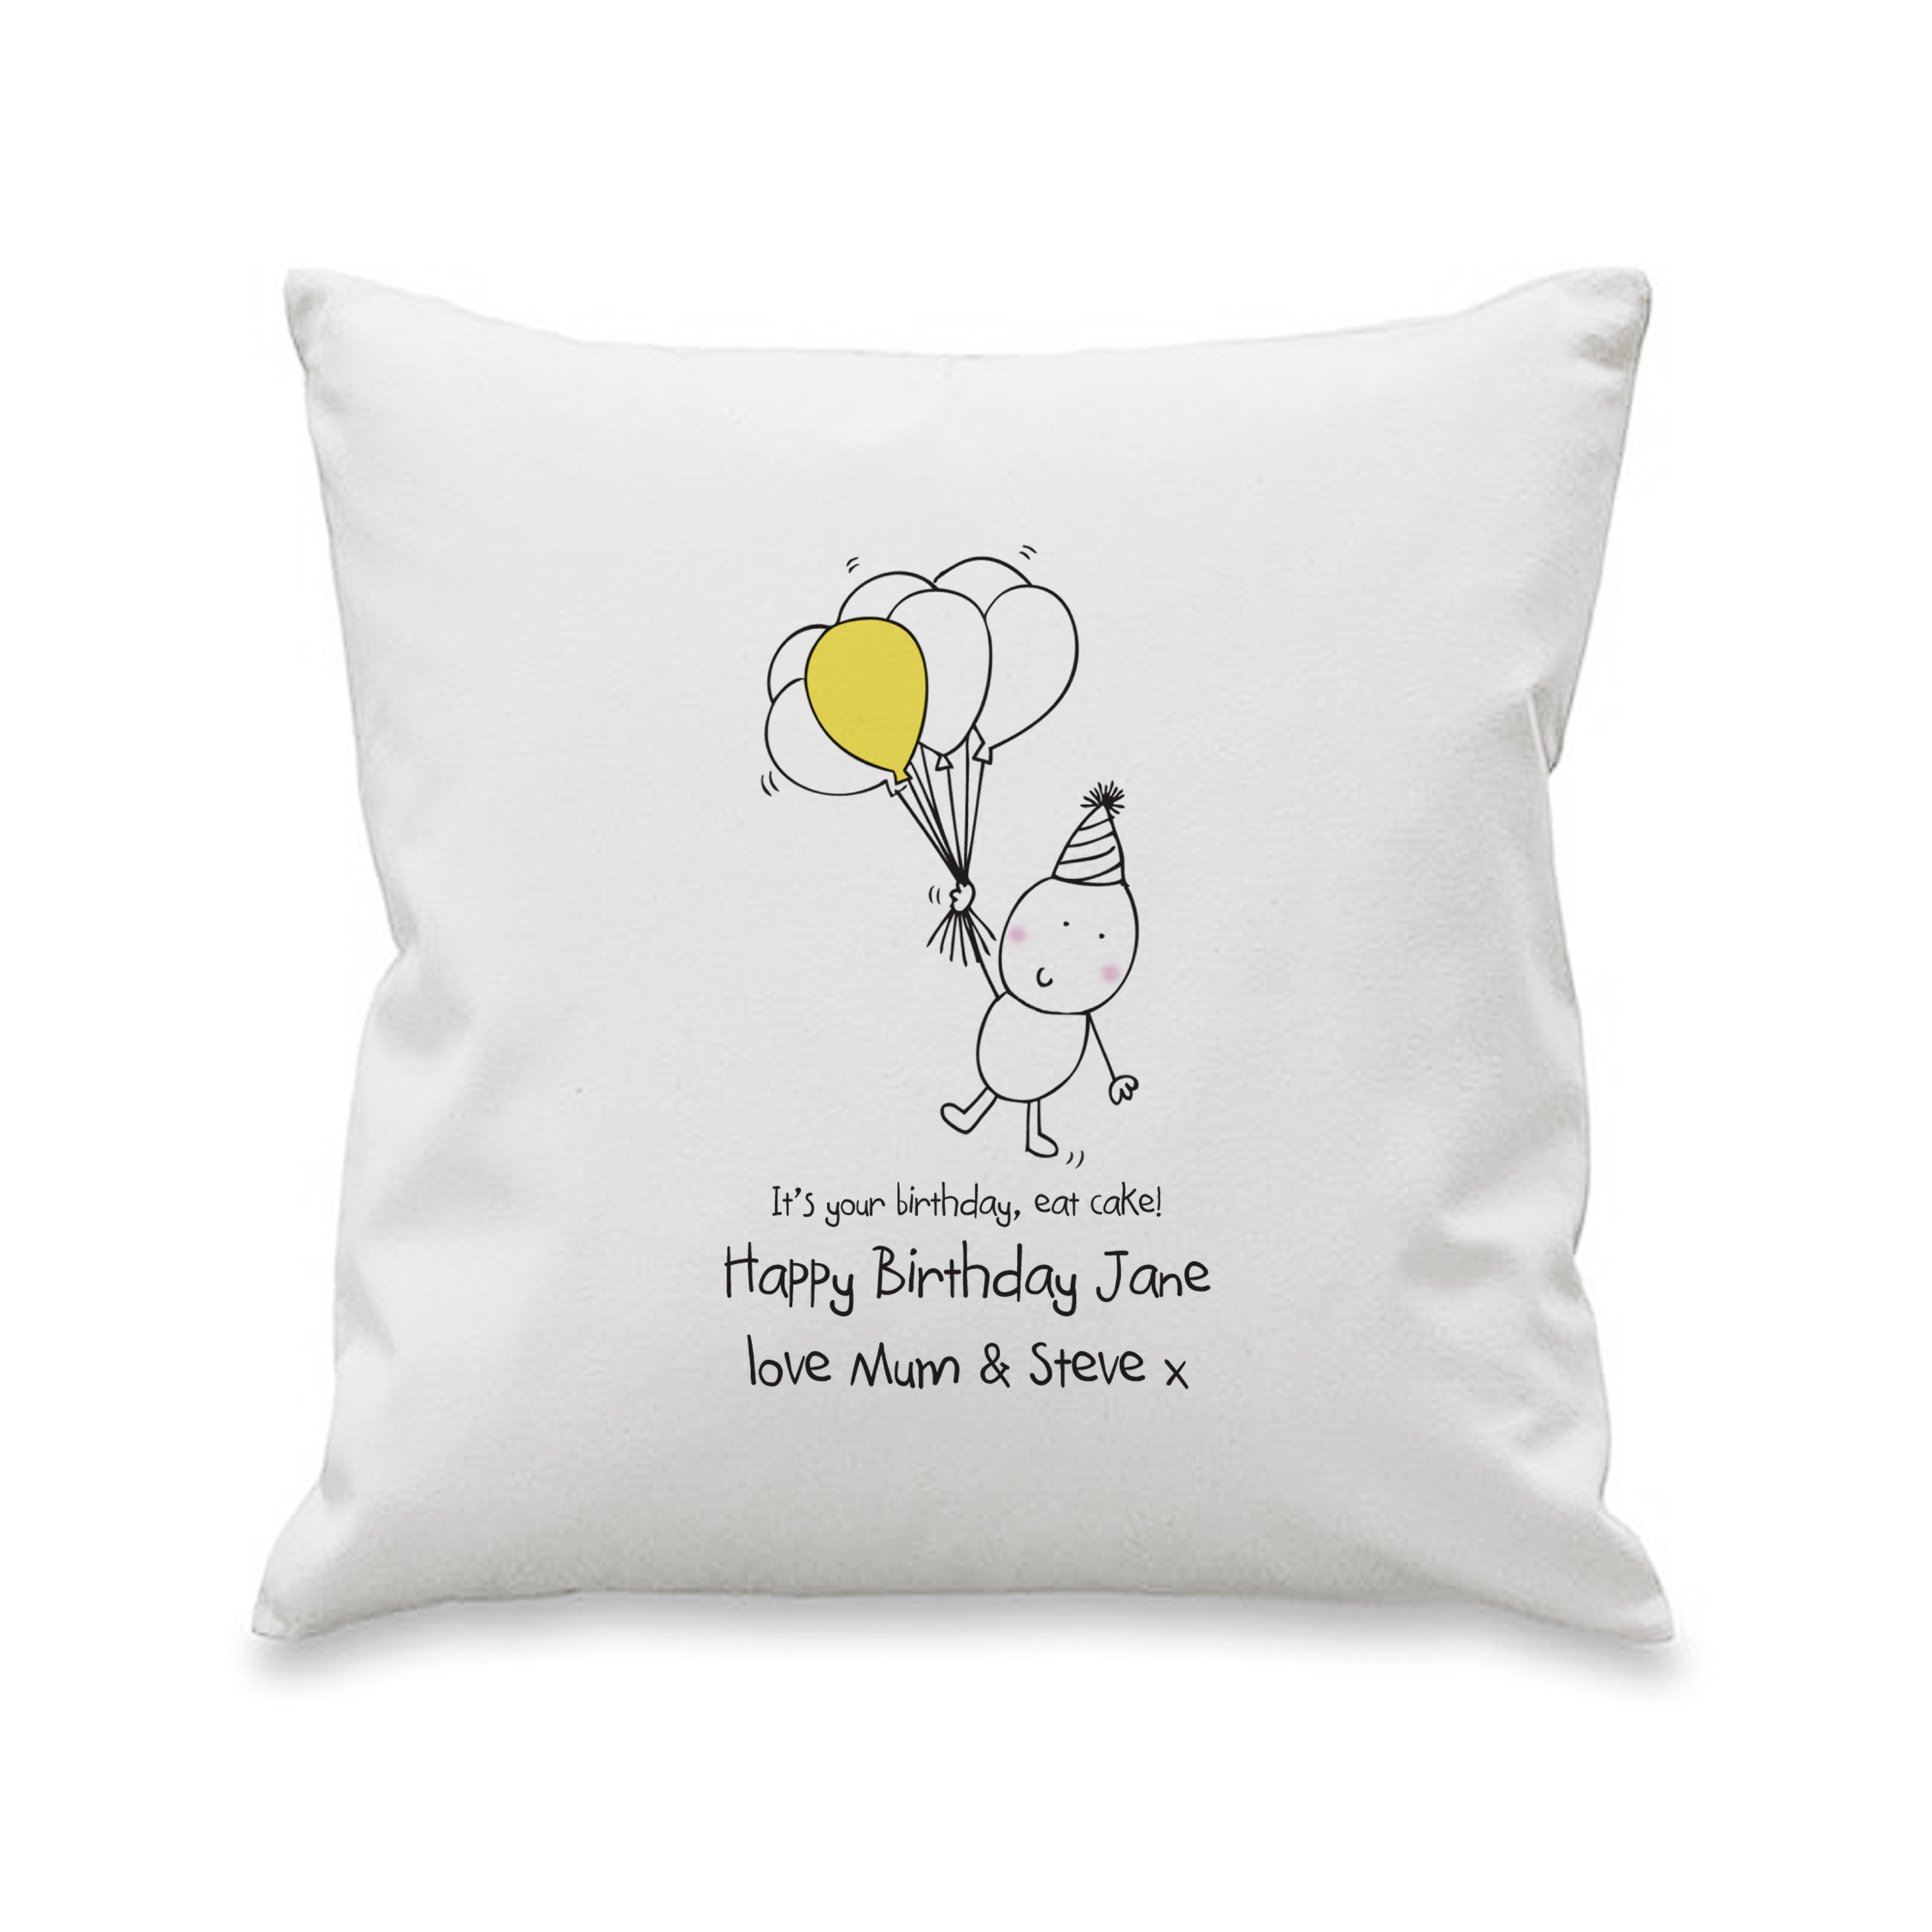 Chilli and Bubbles Birthday Cushion Cover